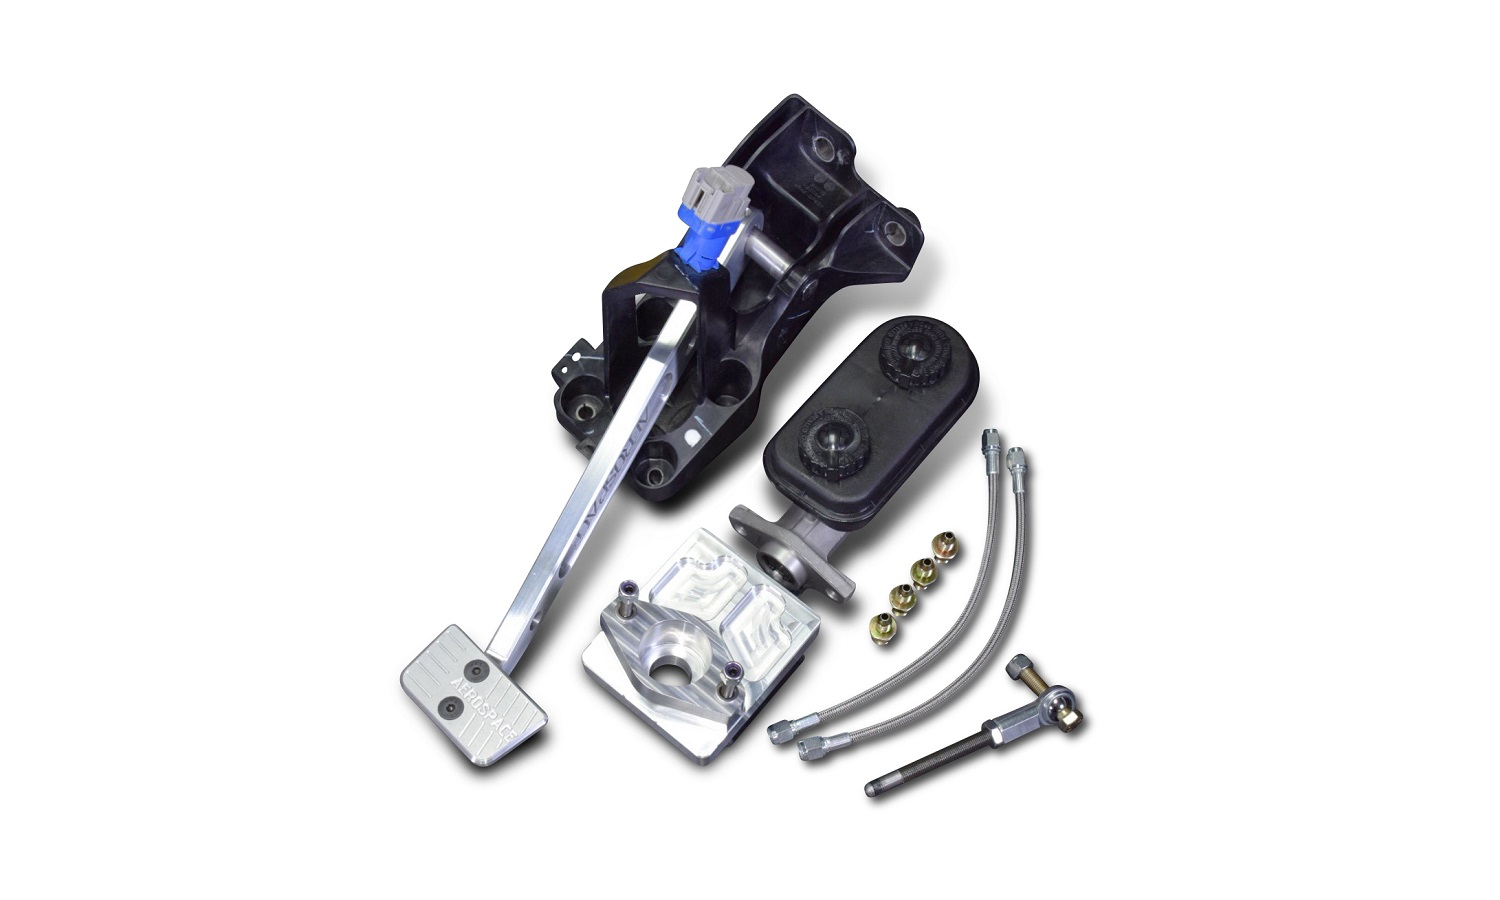 Aerospace Releases Manual Brake And Pedal Kit For S550